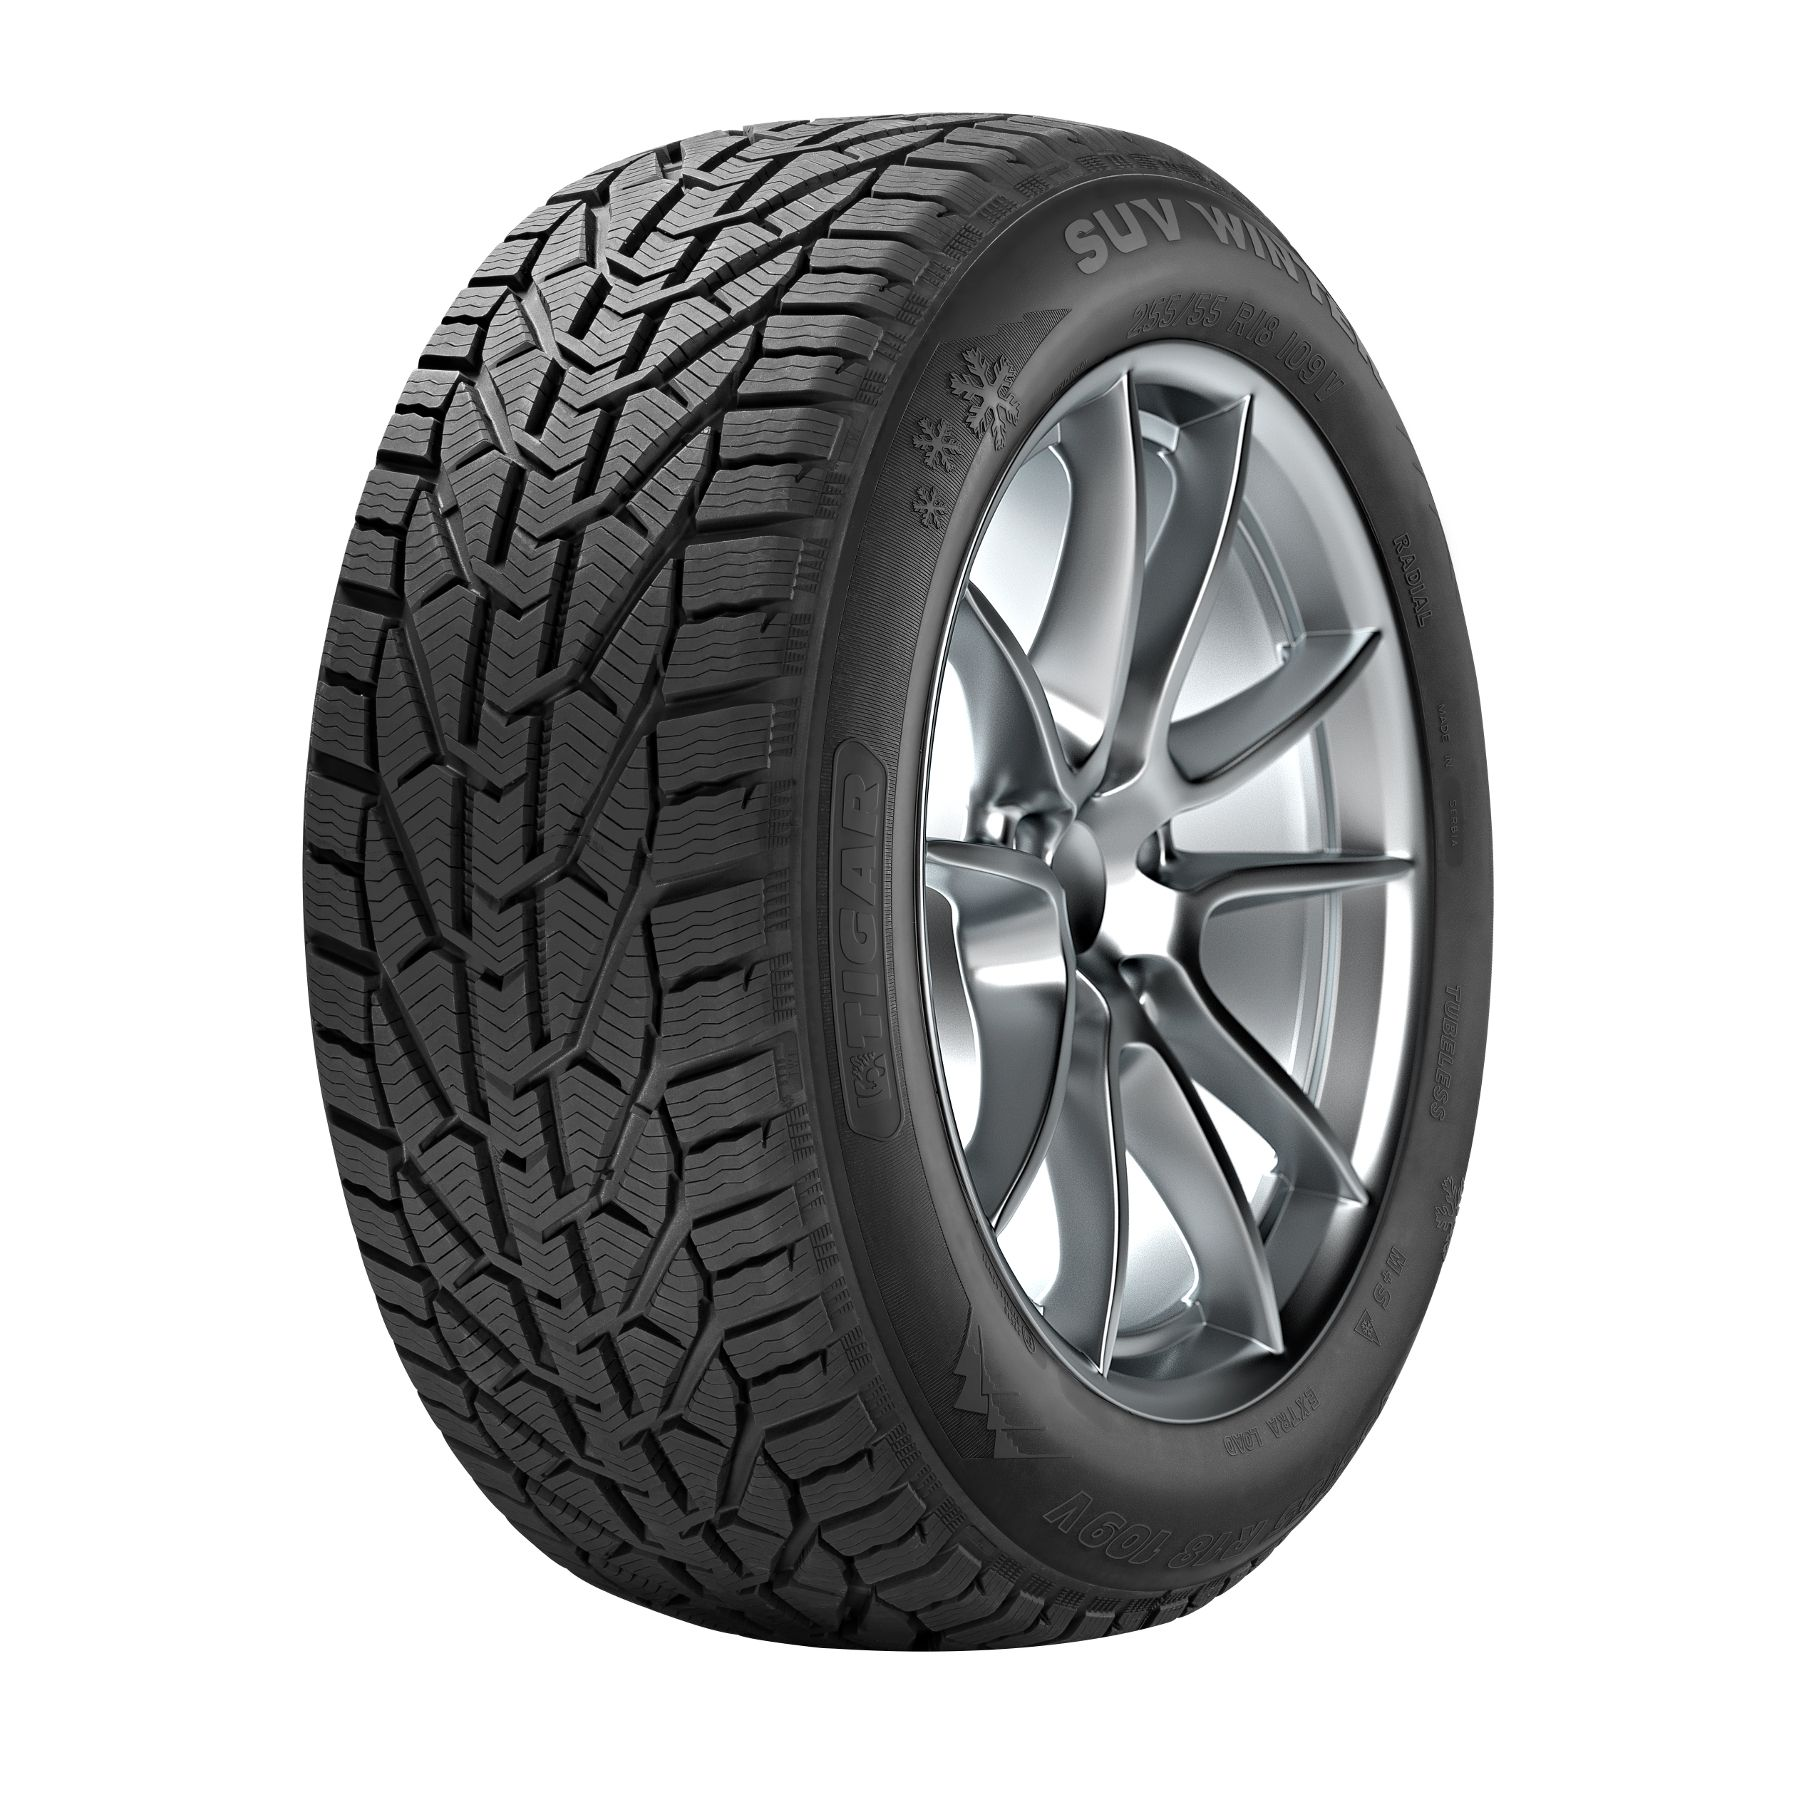 Anvelope Tigar Winter Suv 235/65R17 108H Iarna imagine